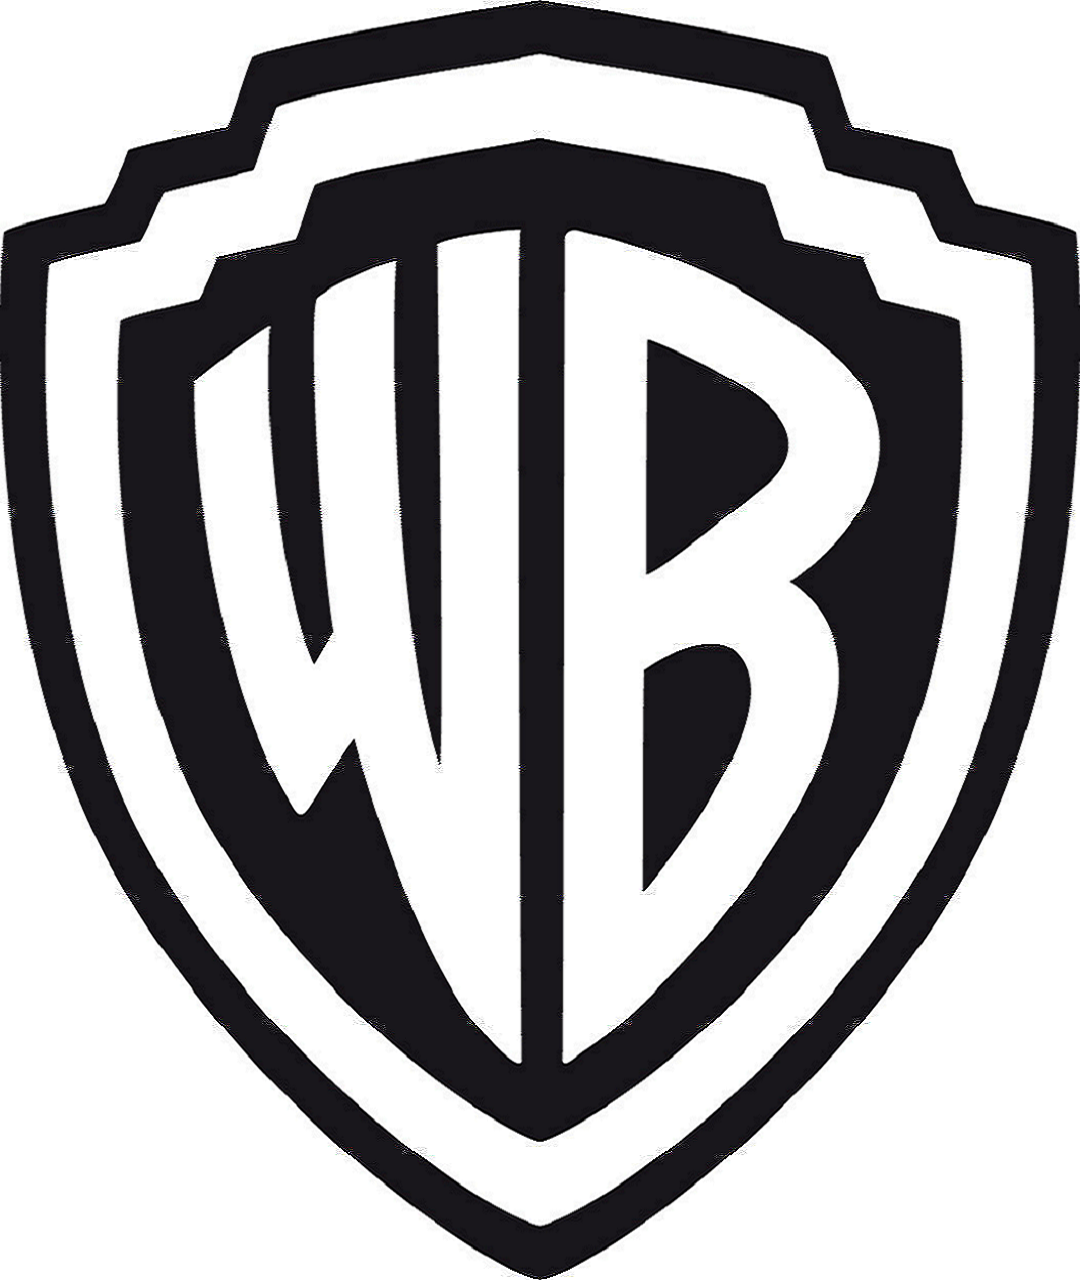 . PlusPng.com manthemovieguy-daqsiot.png Warner Bros logo PlusPng.com  - Warner Bros Logo PNG